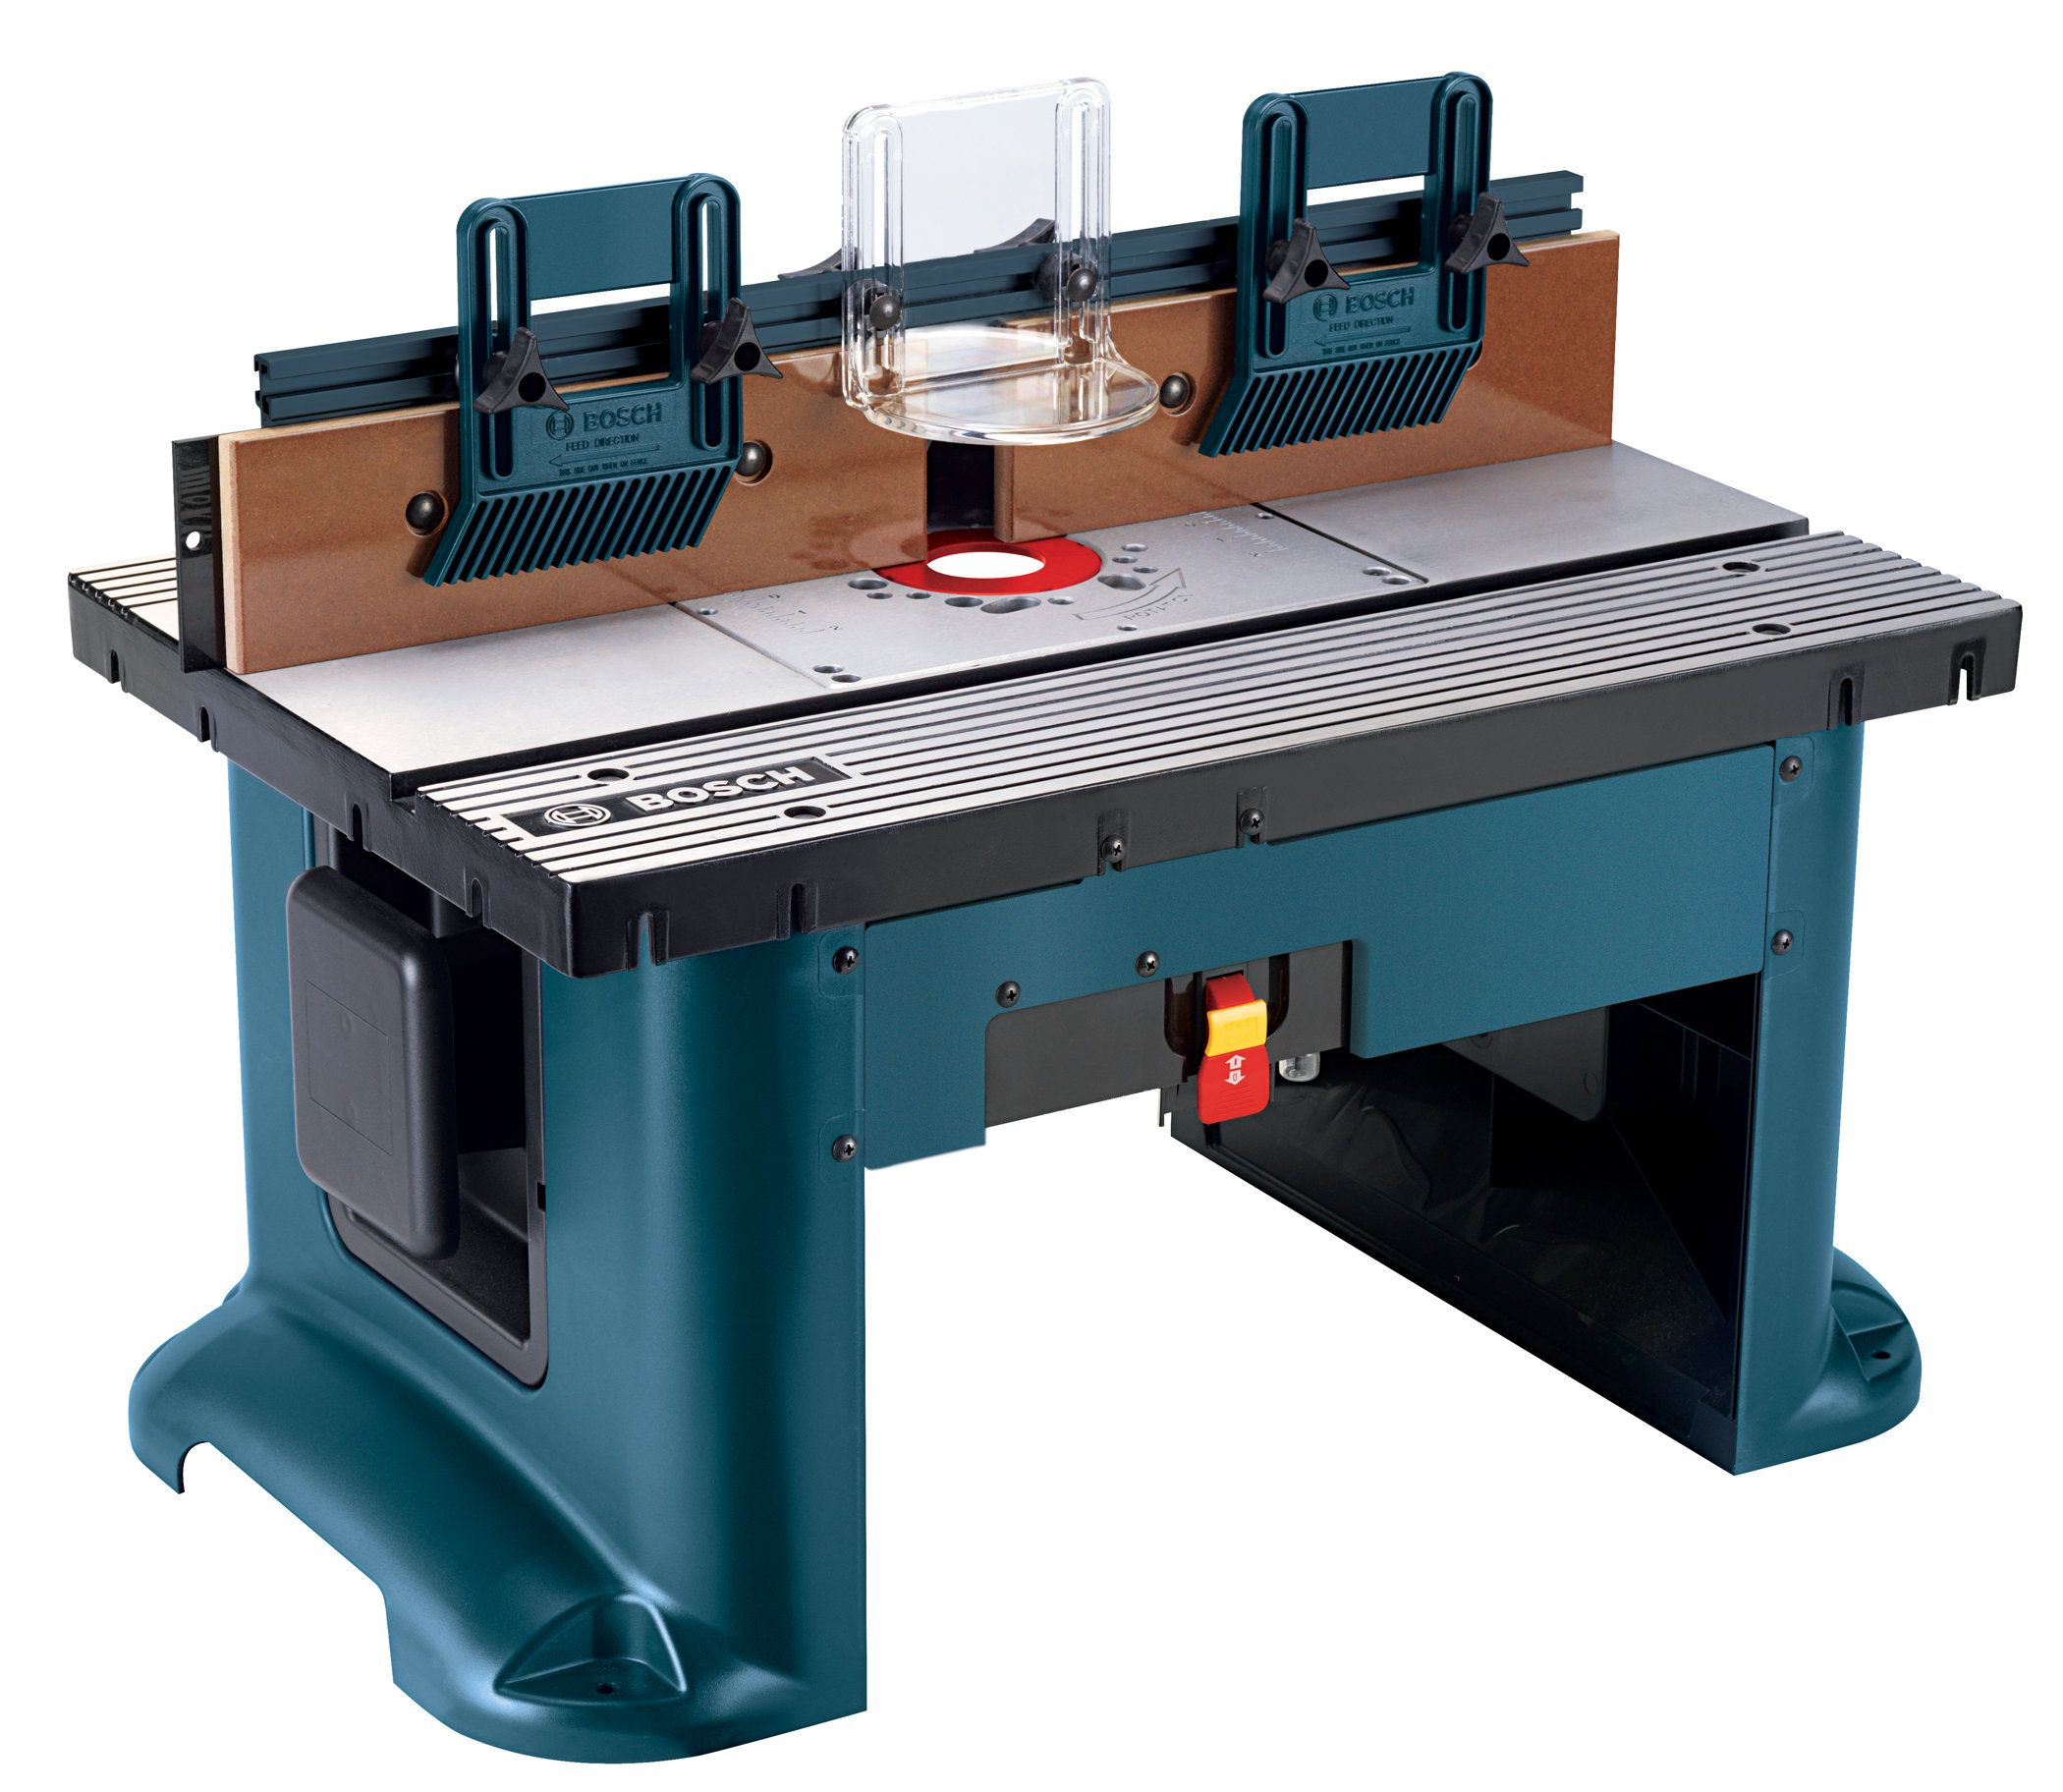 Save up to 62 off of bosch benchtop router table at amazon save up to 62 off of bosch benchtop router table at amazon keyboard keysfo Images